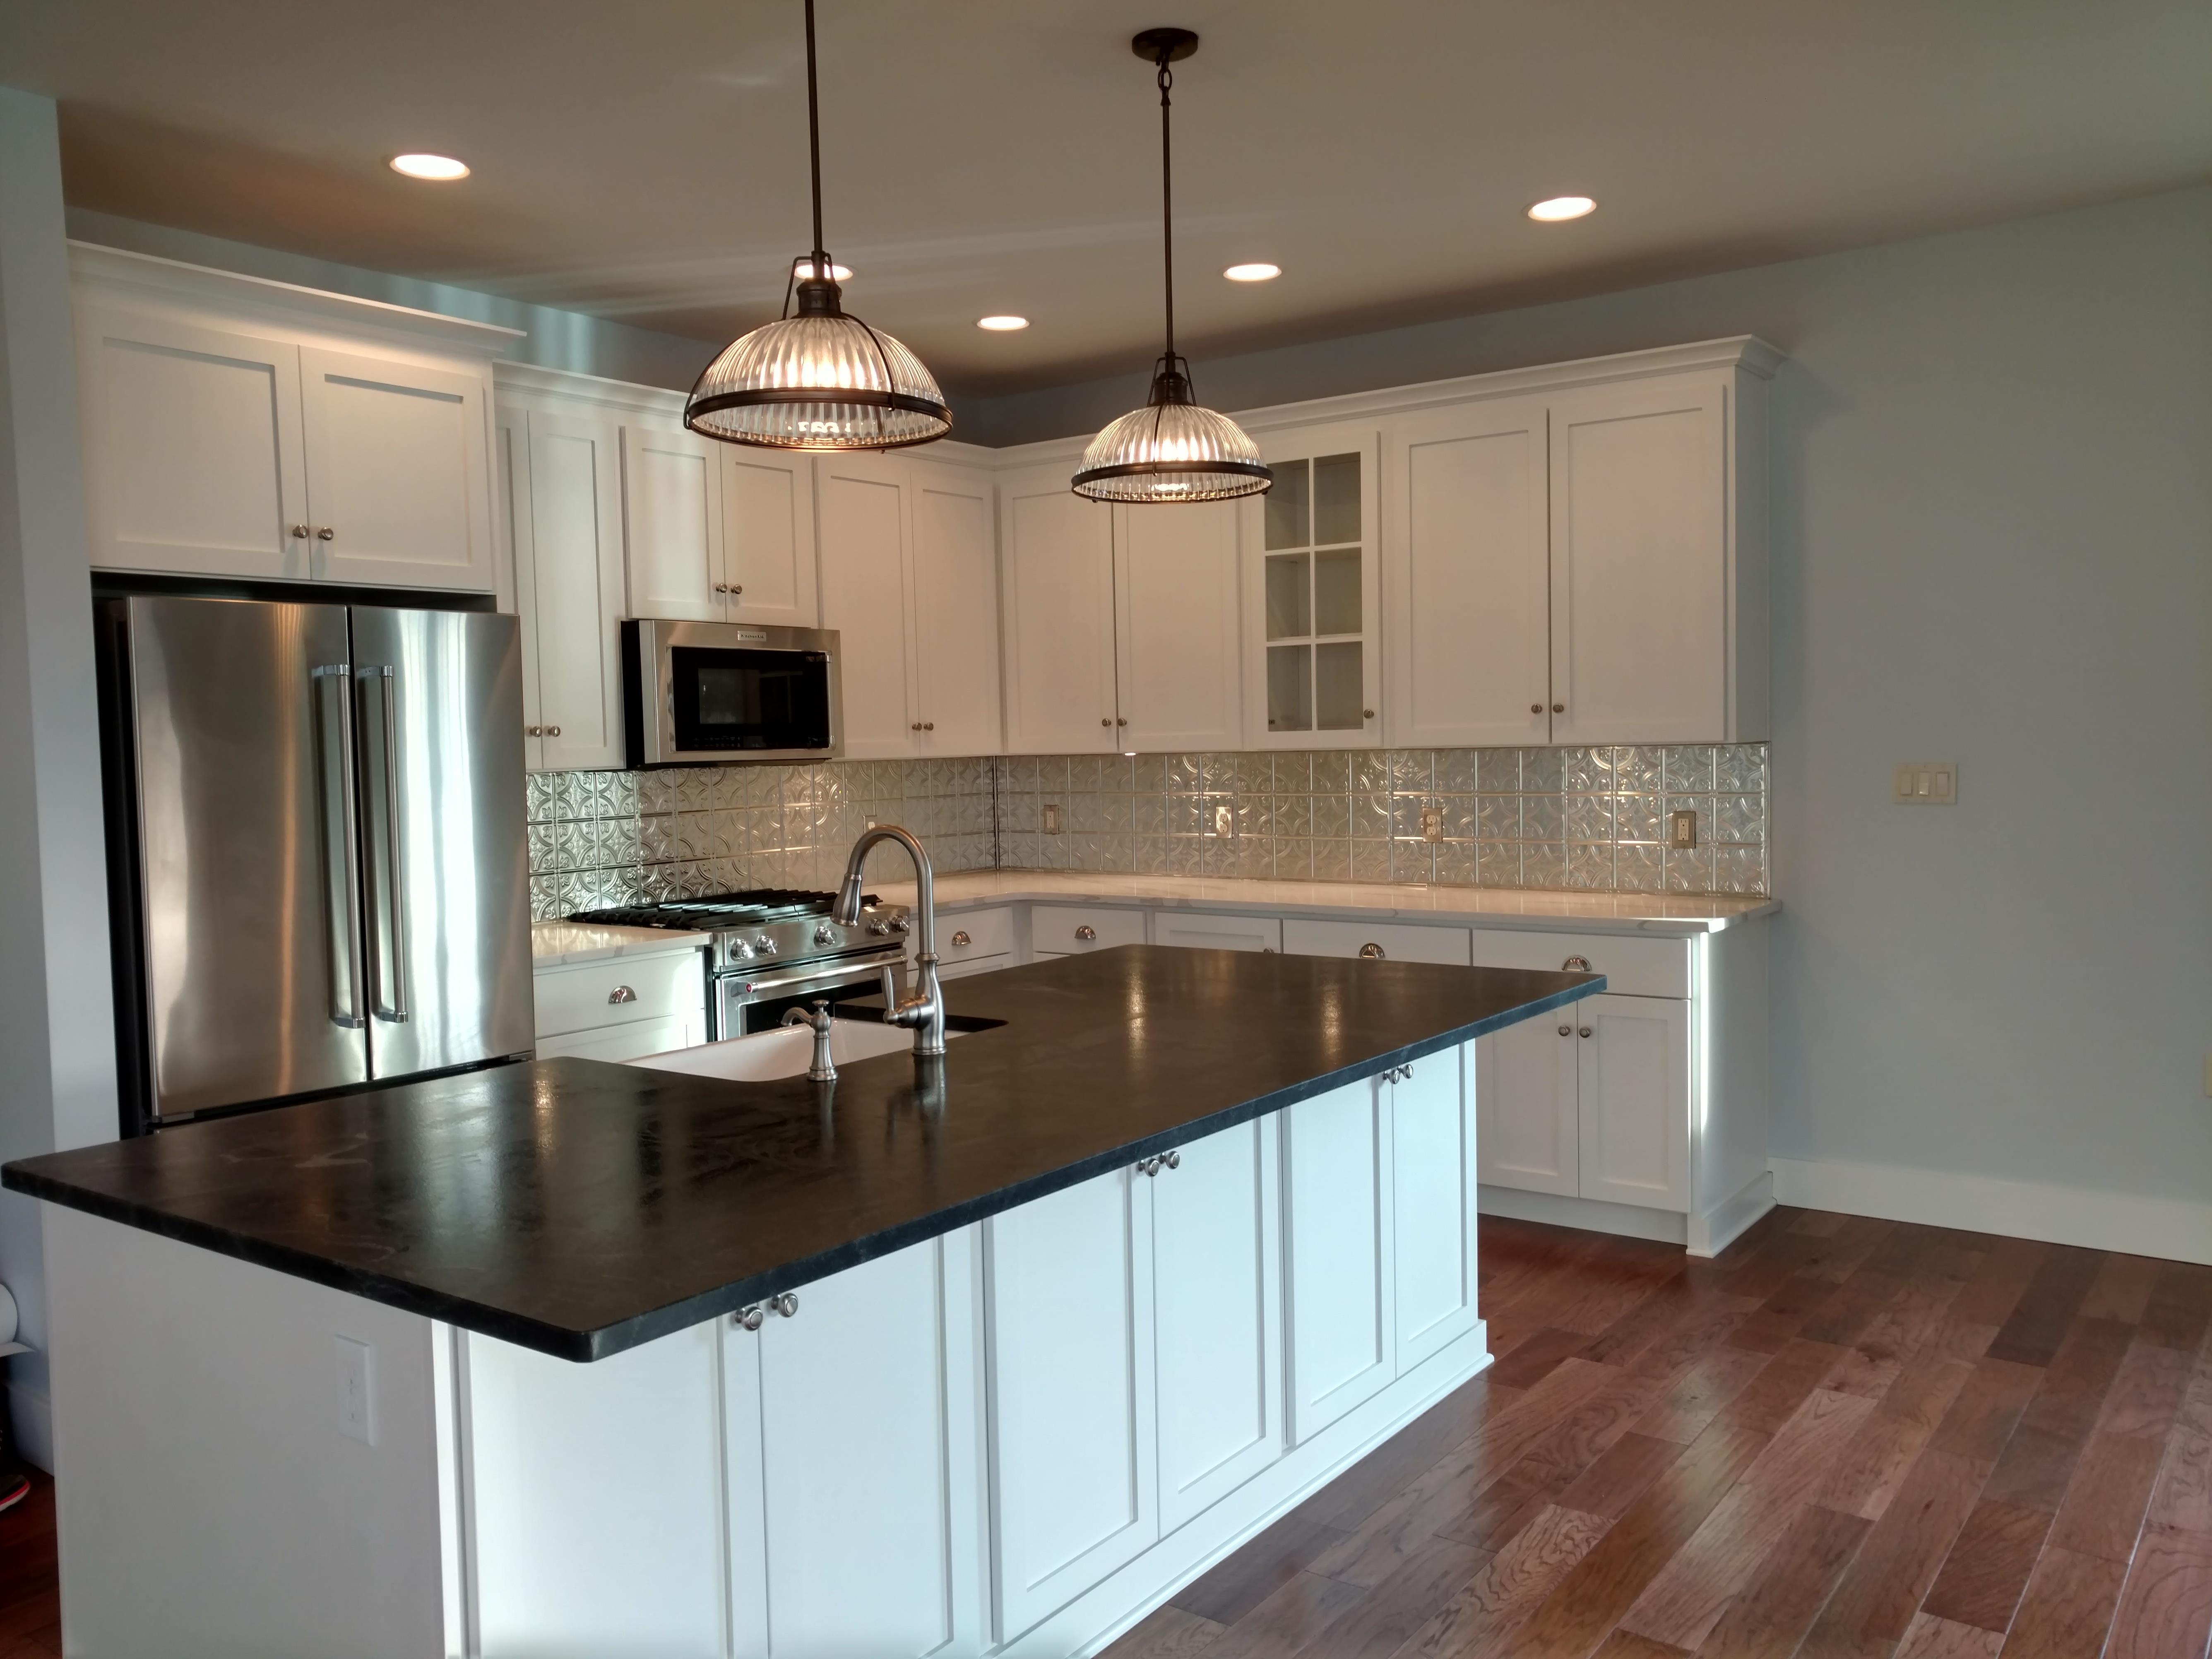 Kitchen featured in The Willow By Timbercrest Builders in Poconos, PA